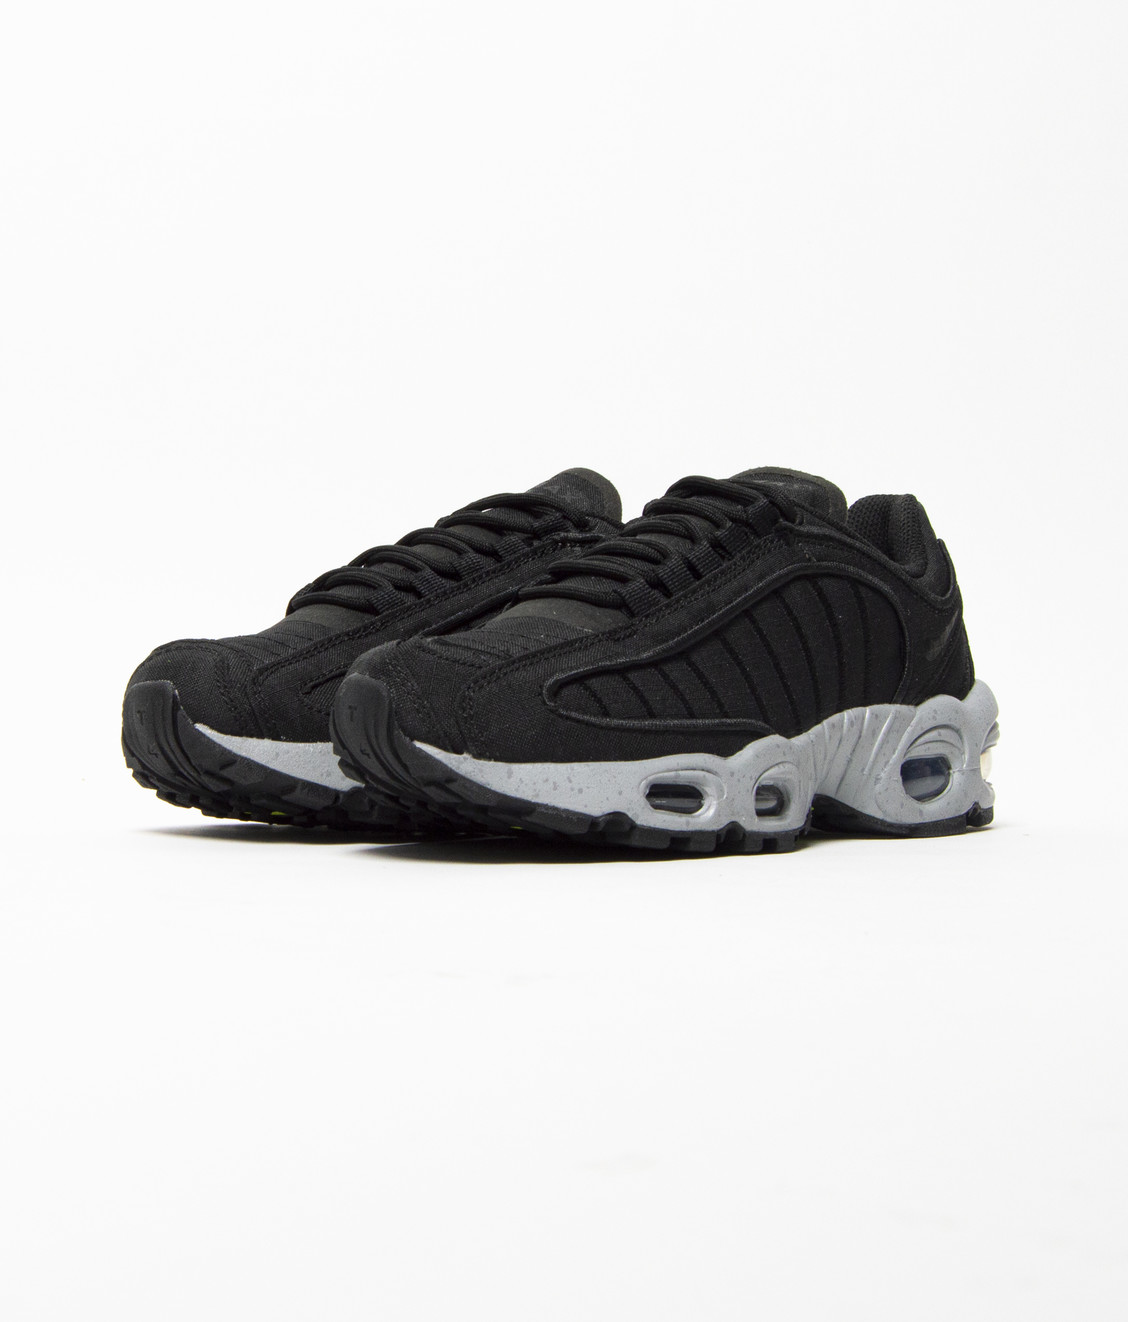 Nike Nike Air Max Tailwind IV SP Black Ripstop